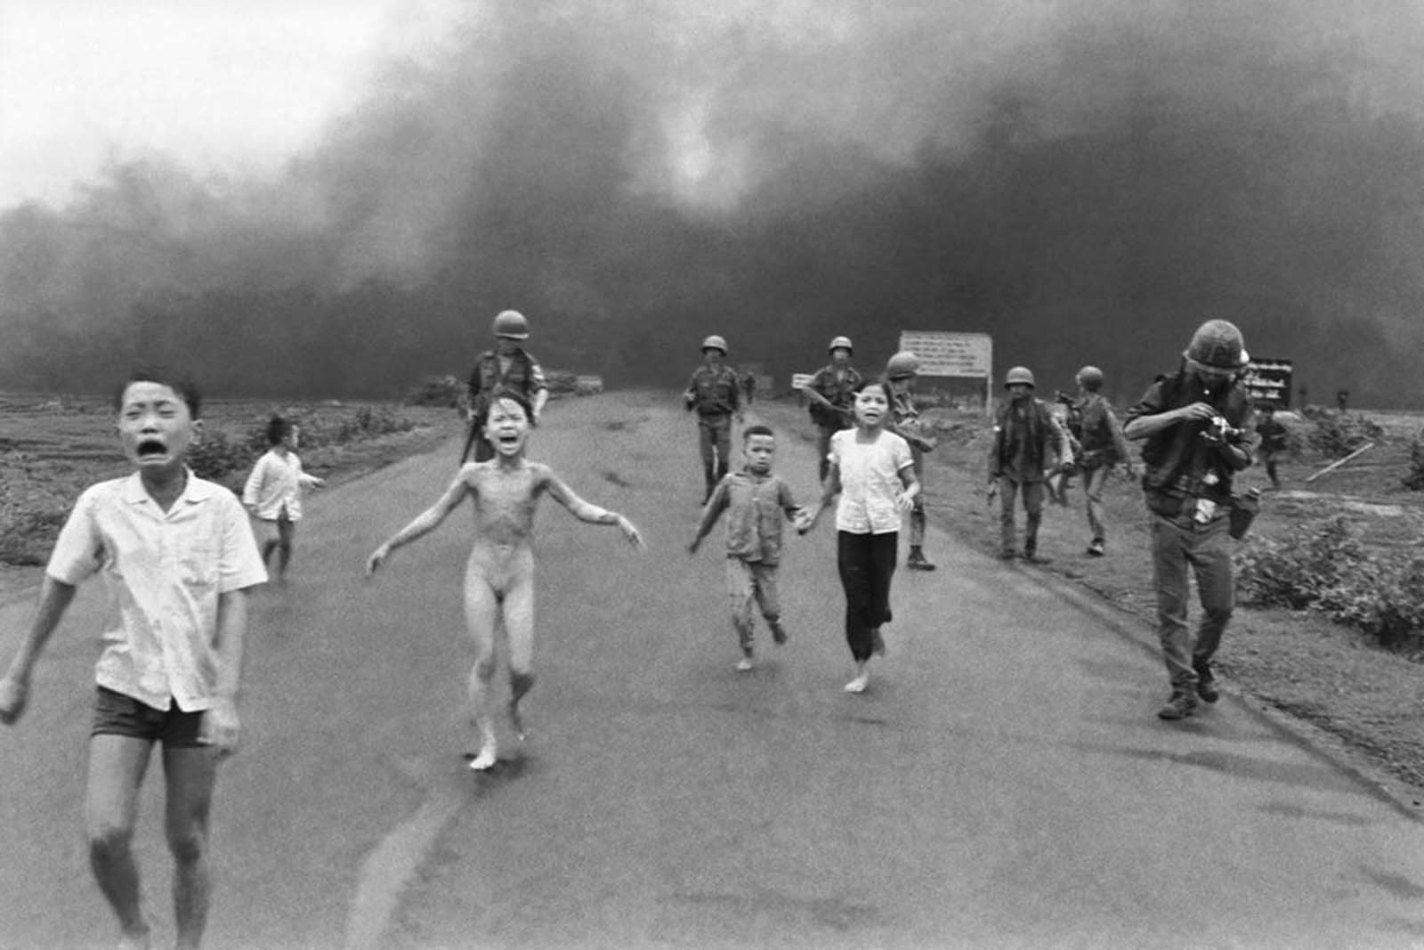 historical photos of The Terror of War, Nick Ut, 1972